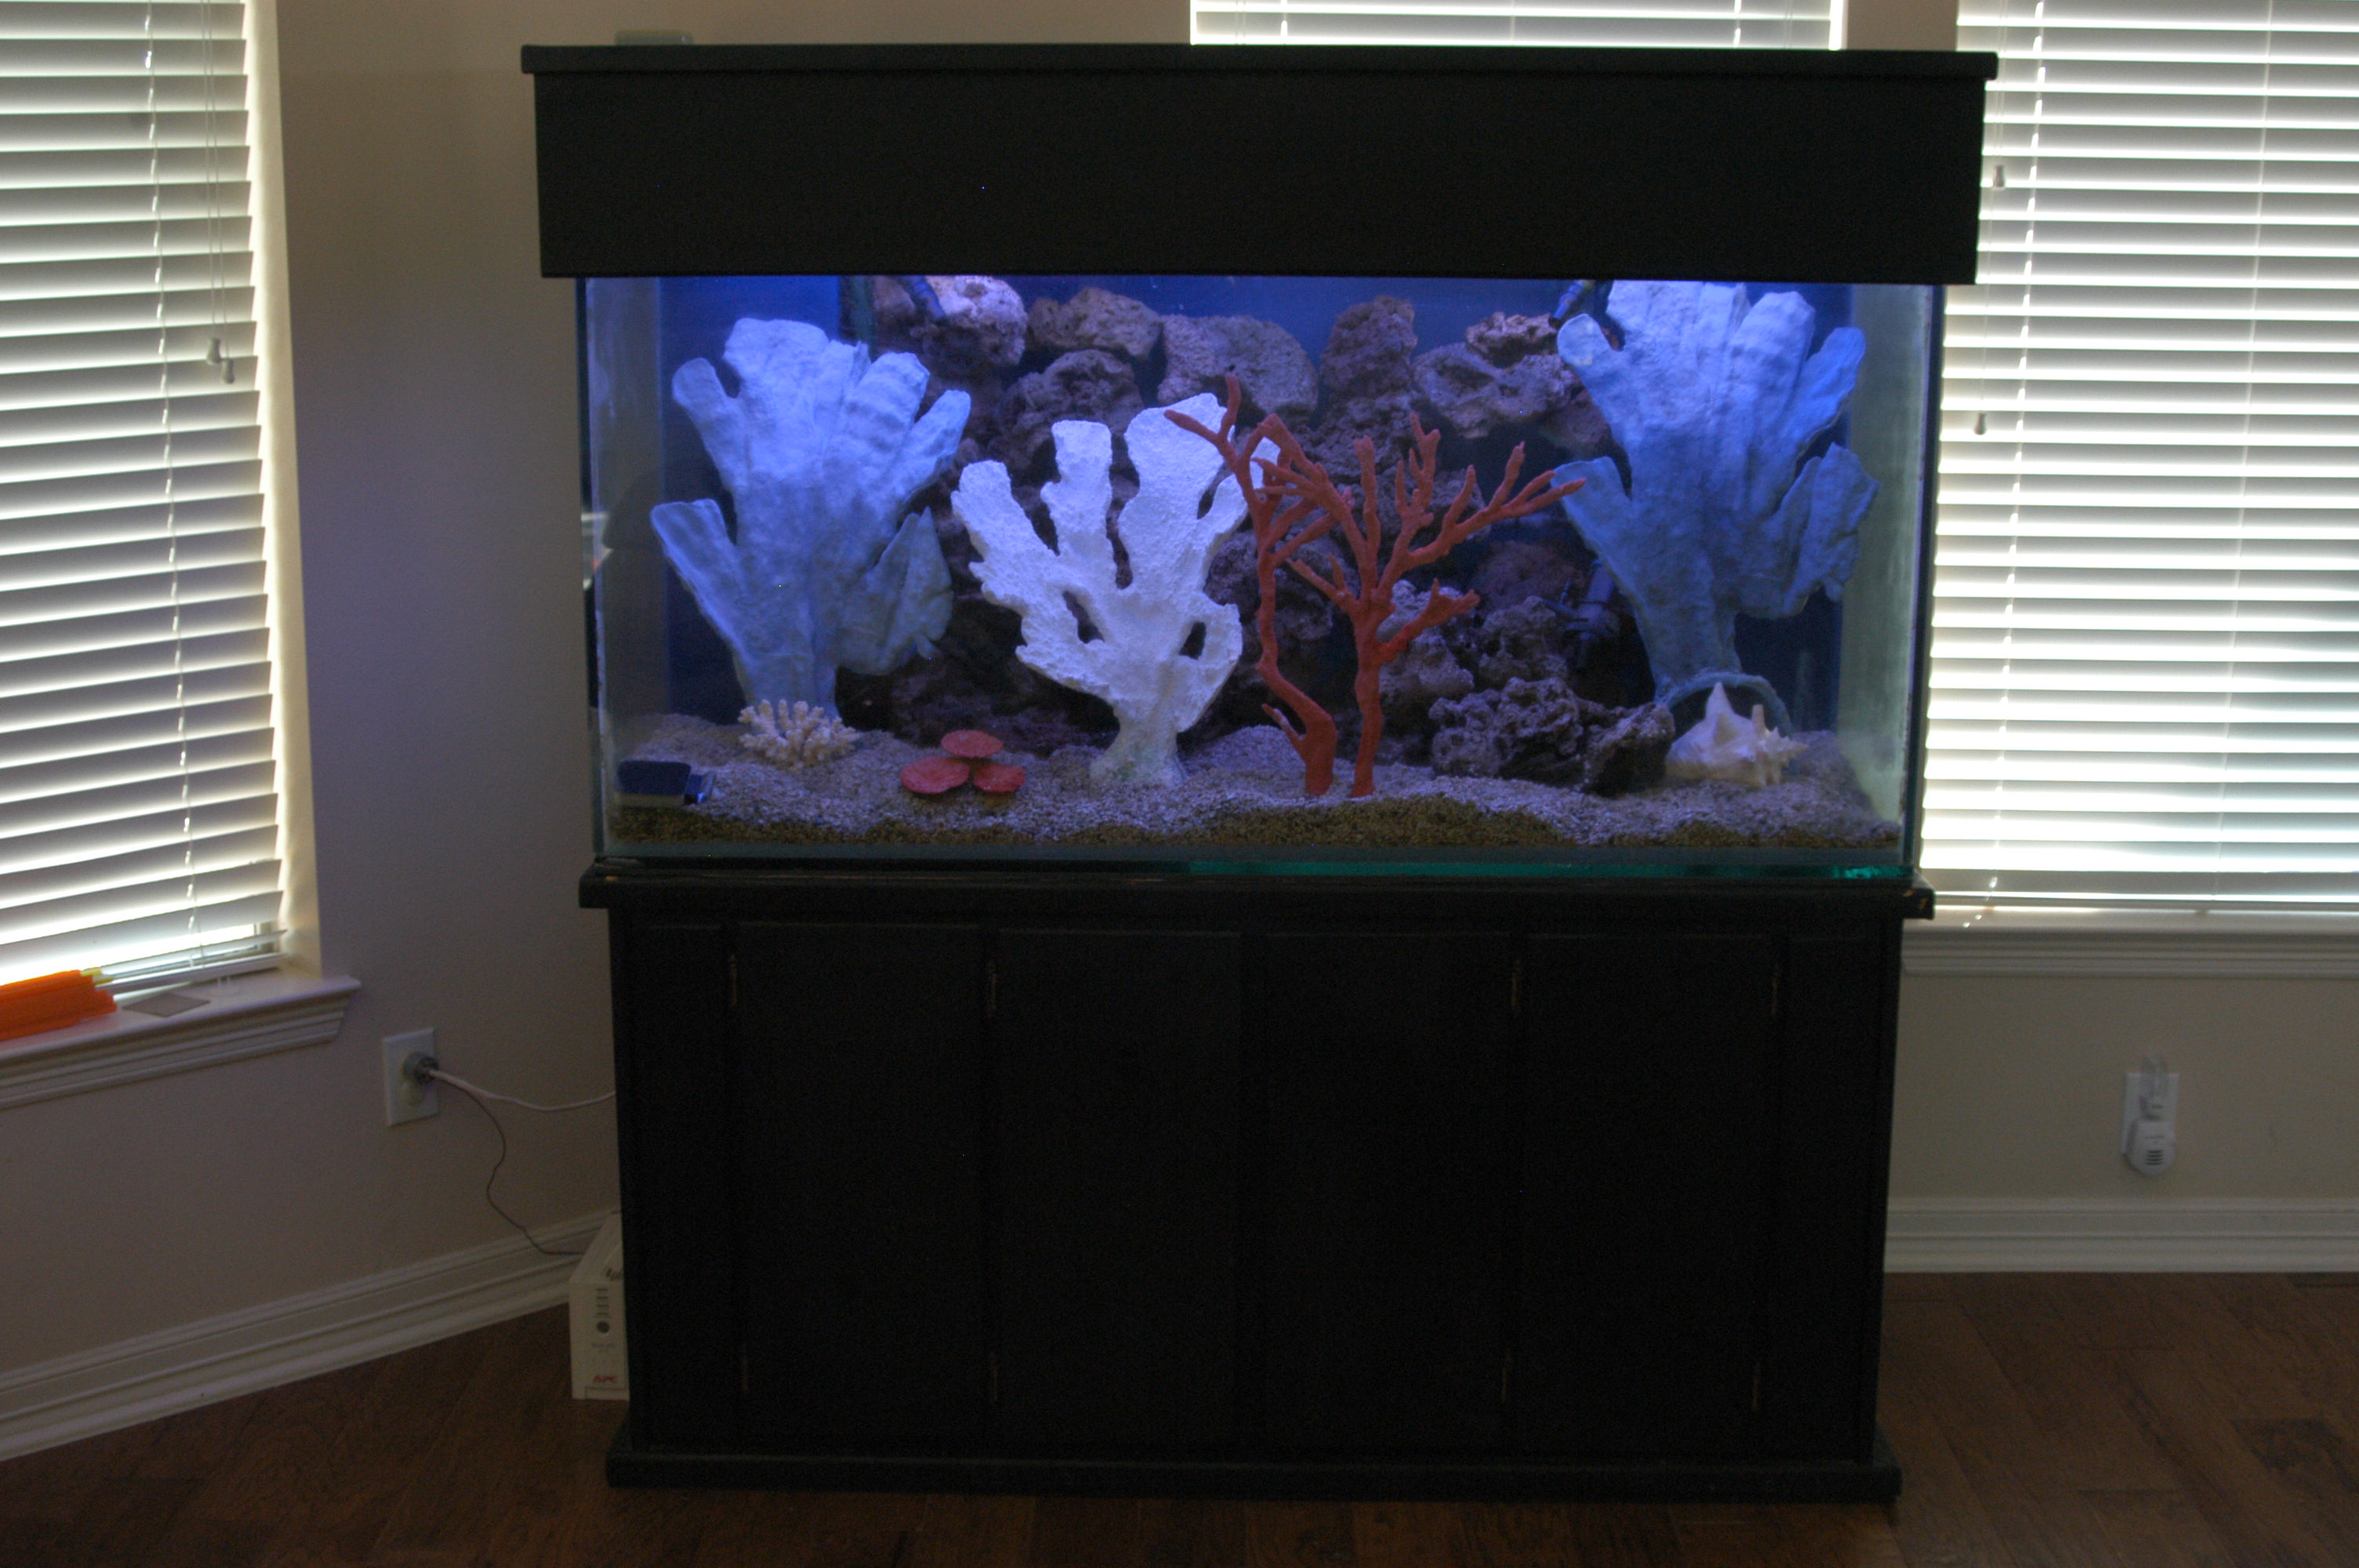 180 gallon aquarium for sale thread 4 21 07 180 gallon for Koi for sale san diego